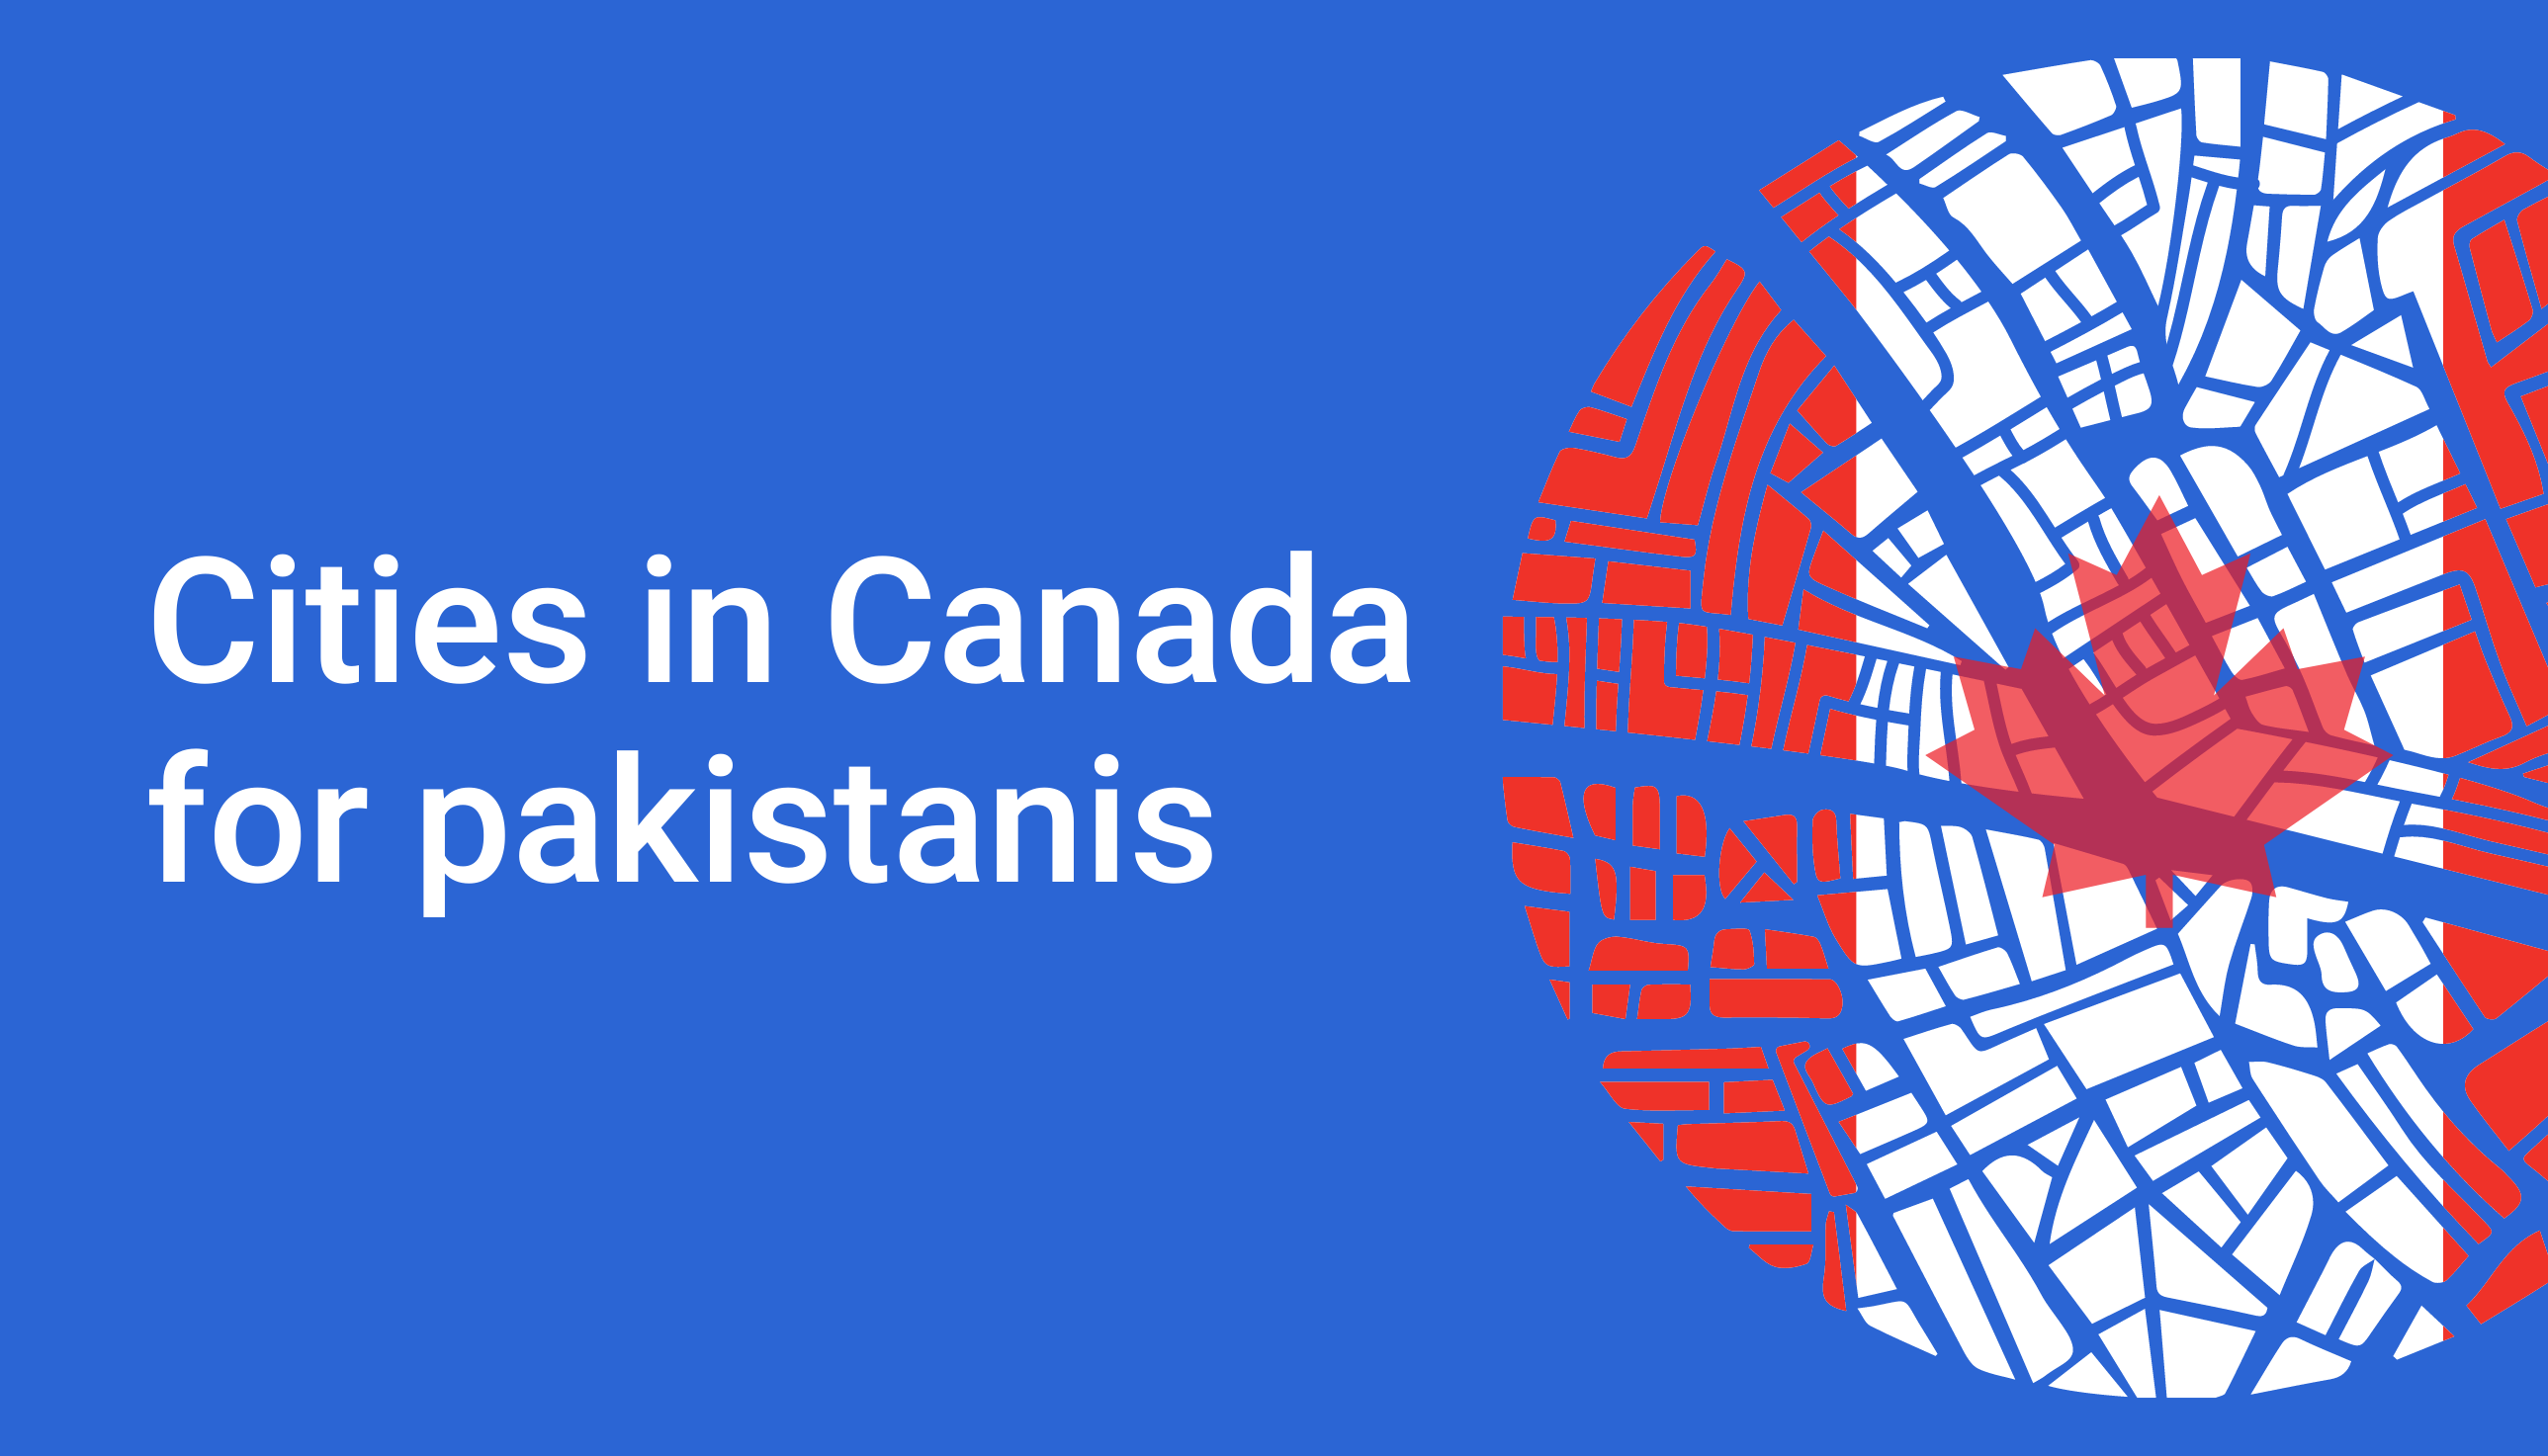 Top 5 cities for Pakistanis in Canada